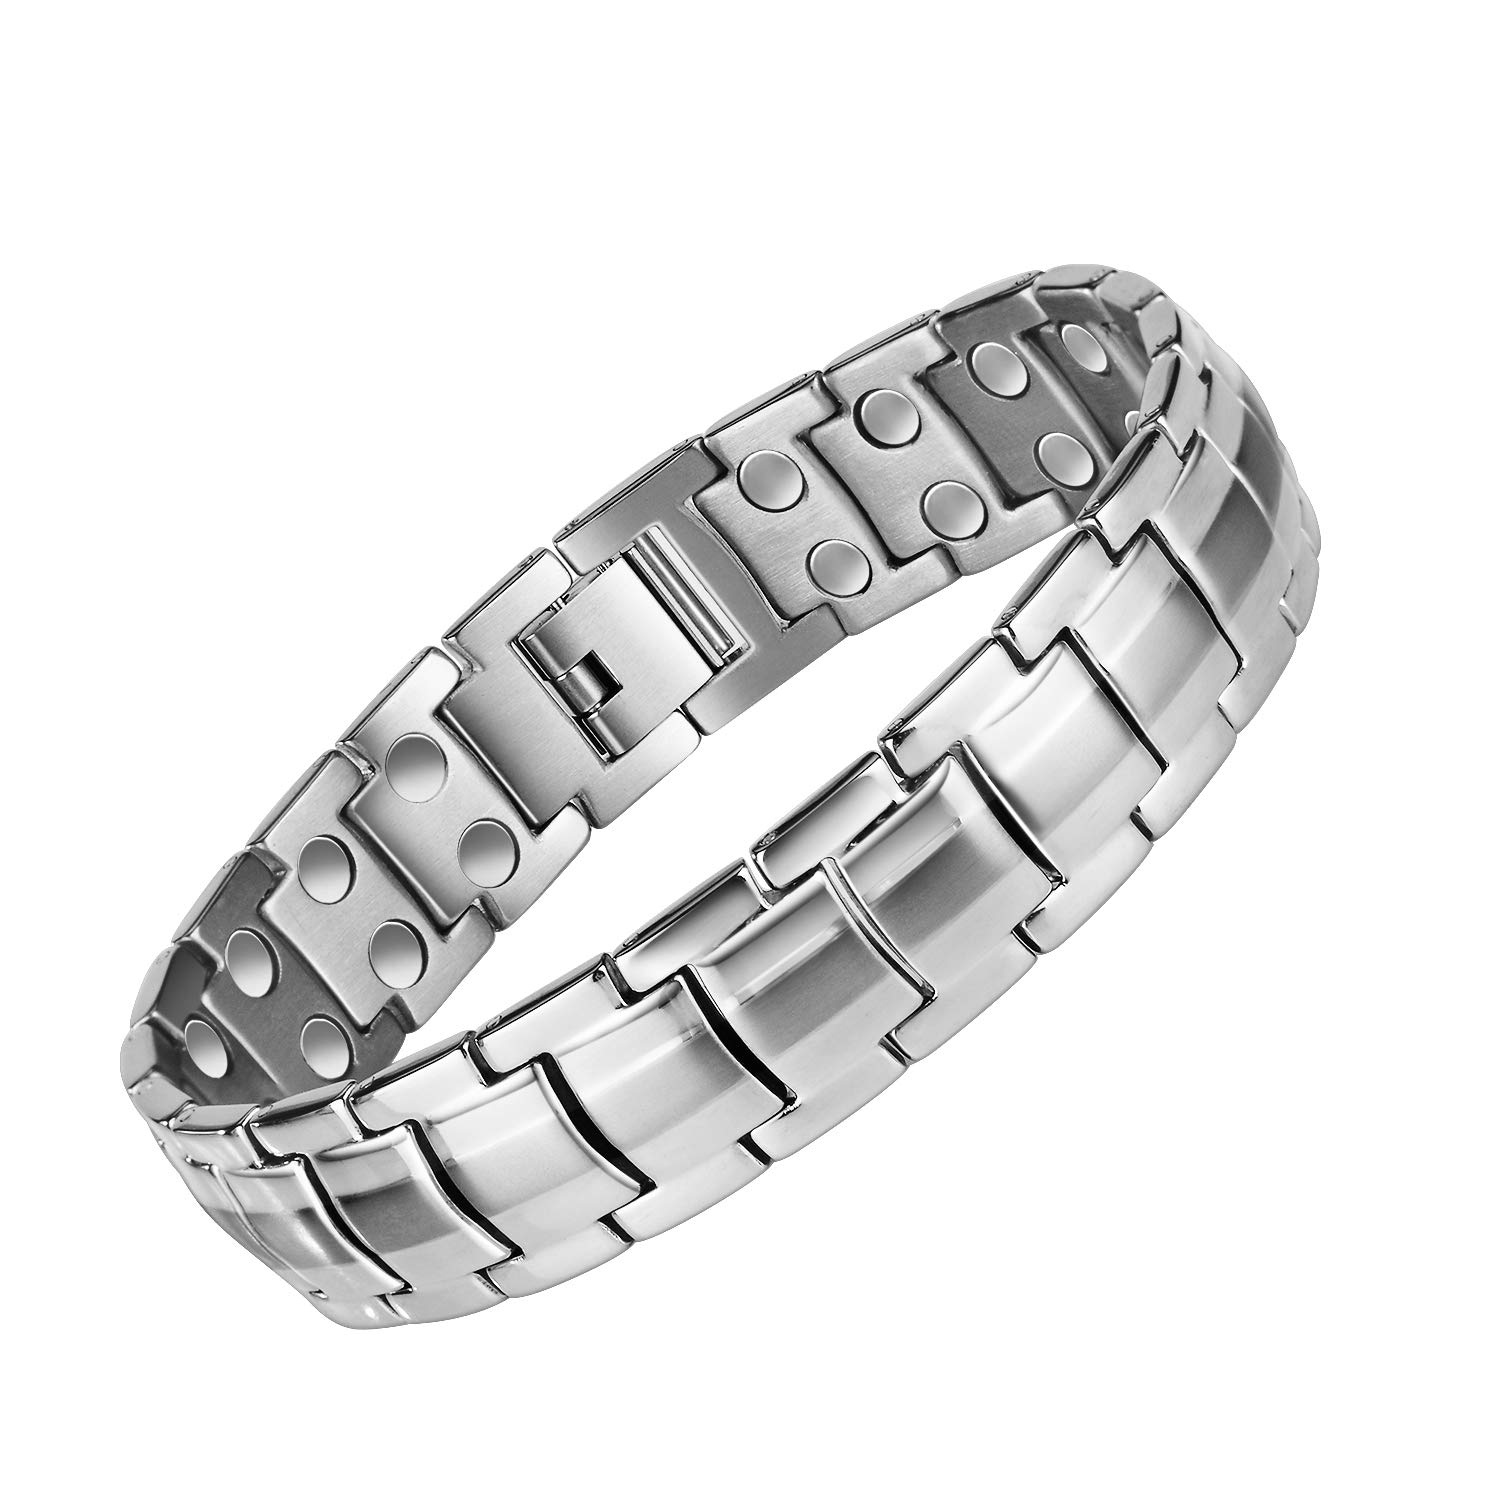 Mens Elegant Magnetic Bracelets,Titanium Magnetic Therapy Bracelets Double Strong Magnet for Arthritis Pain Relief Carpal Tunnel,Mens Magnetic Bracelets with Link Remove Tool (Silver) ¡ by MASALING